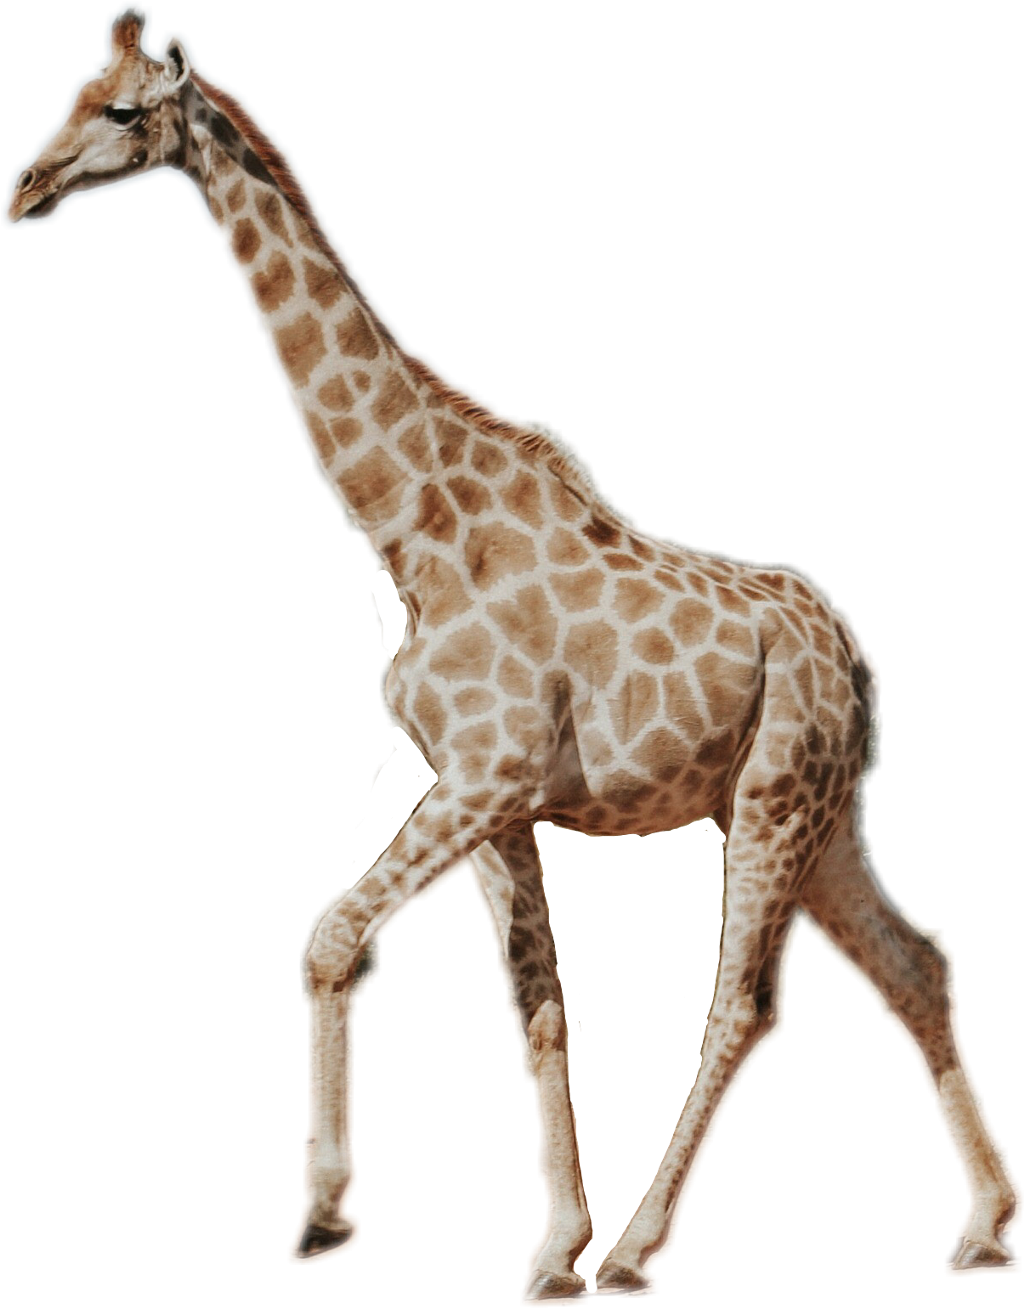 Giraffe neck long real. Tall clipart tall animal